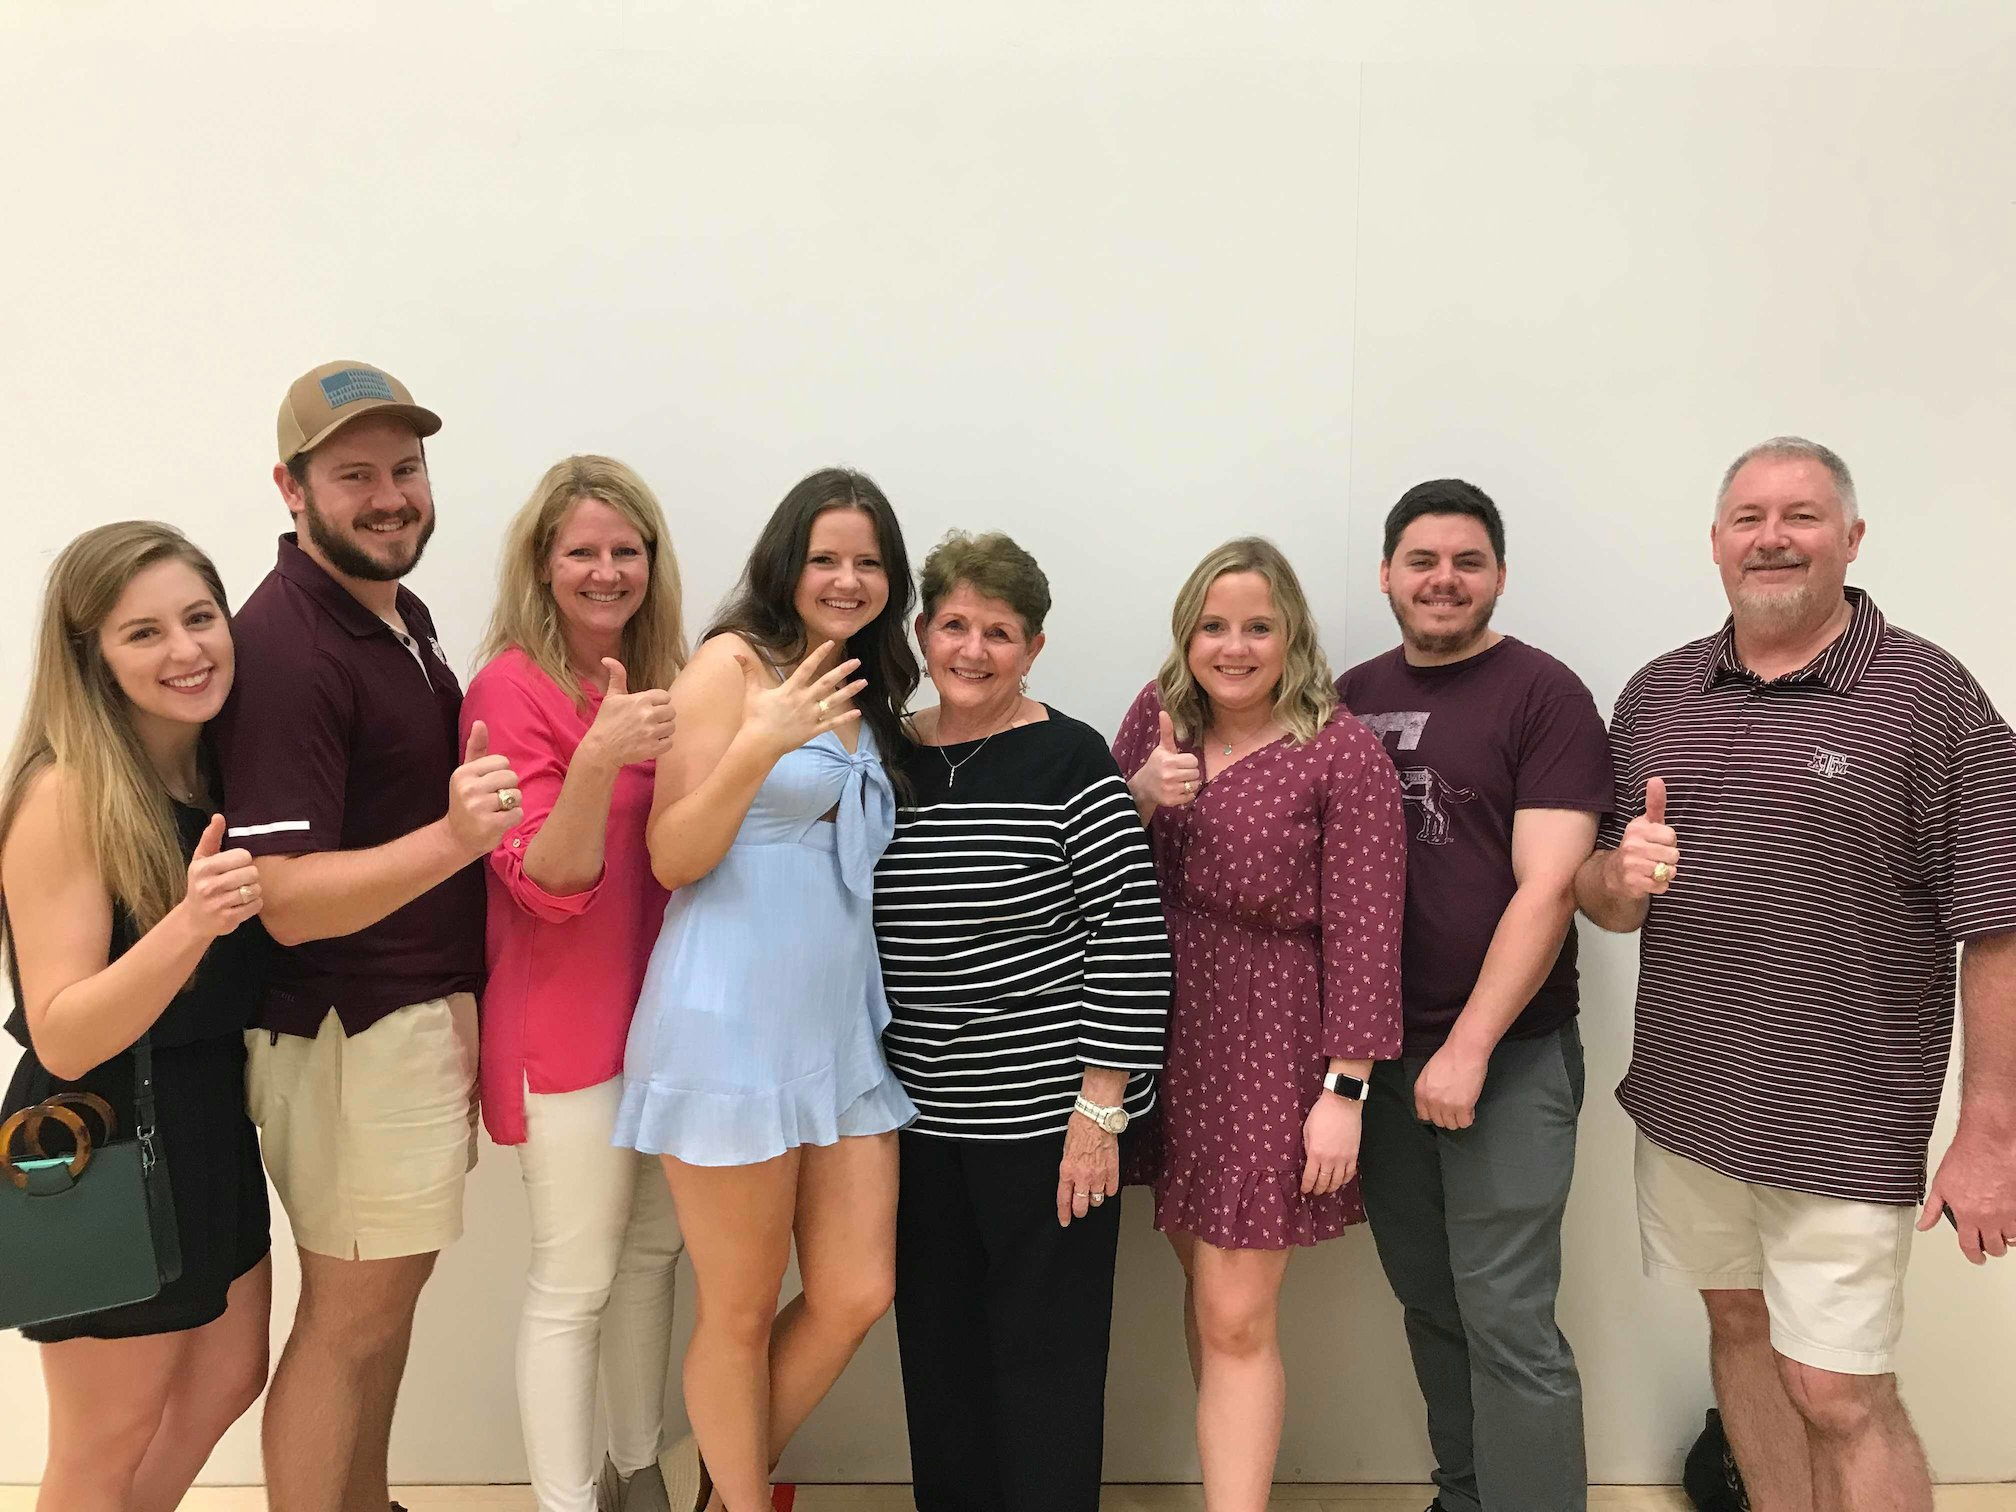 Katherine, Brent, Susan, Maddie, Memommy, Courtney, Cody, and Mike at Maddies Ring Day.